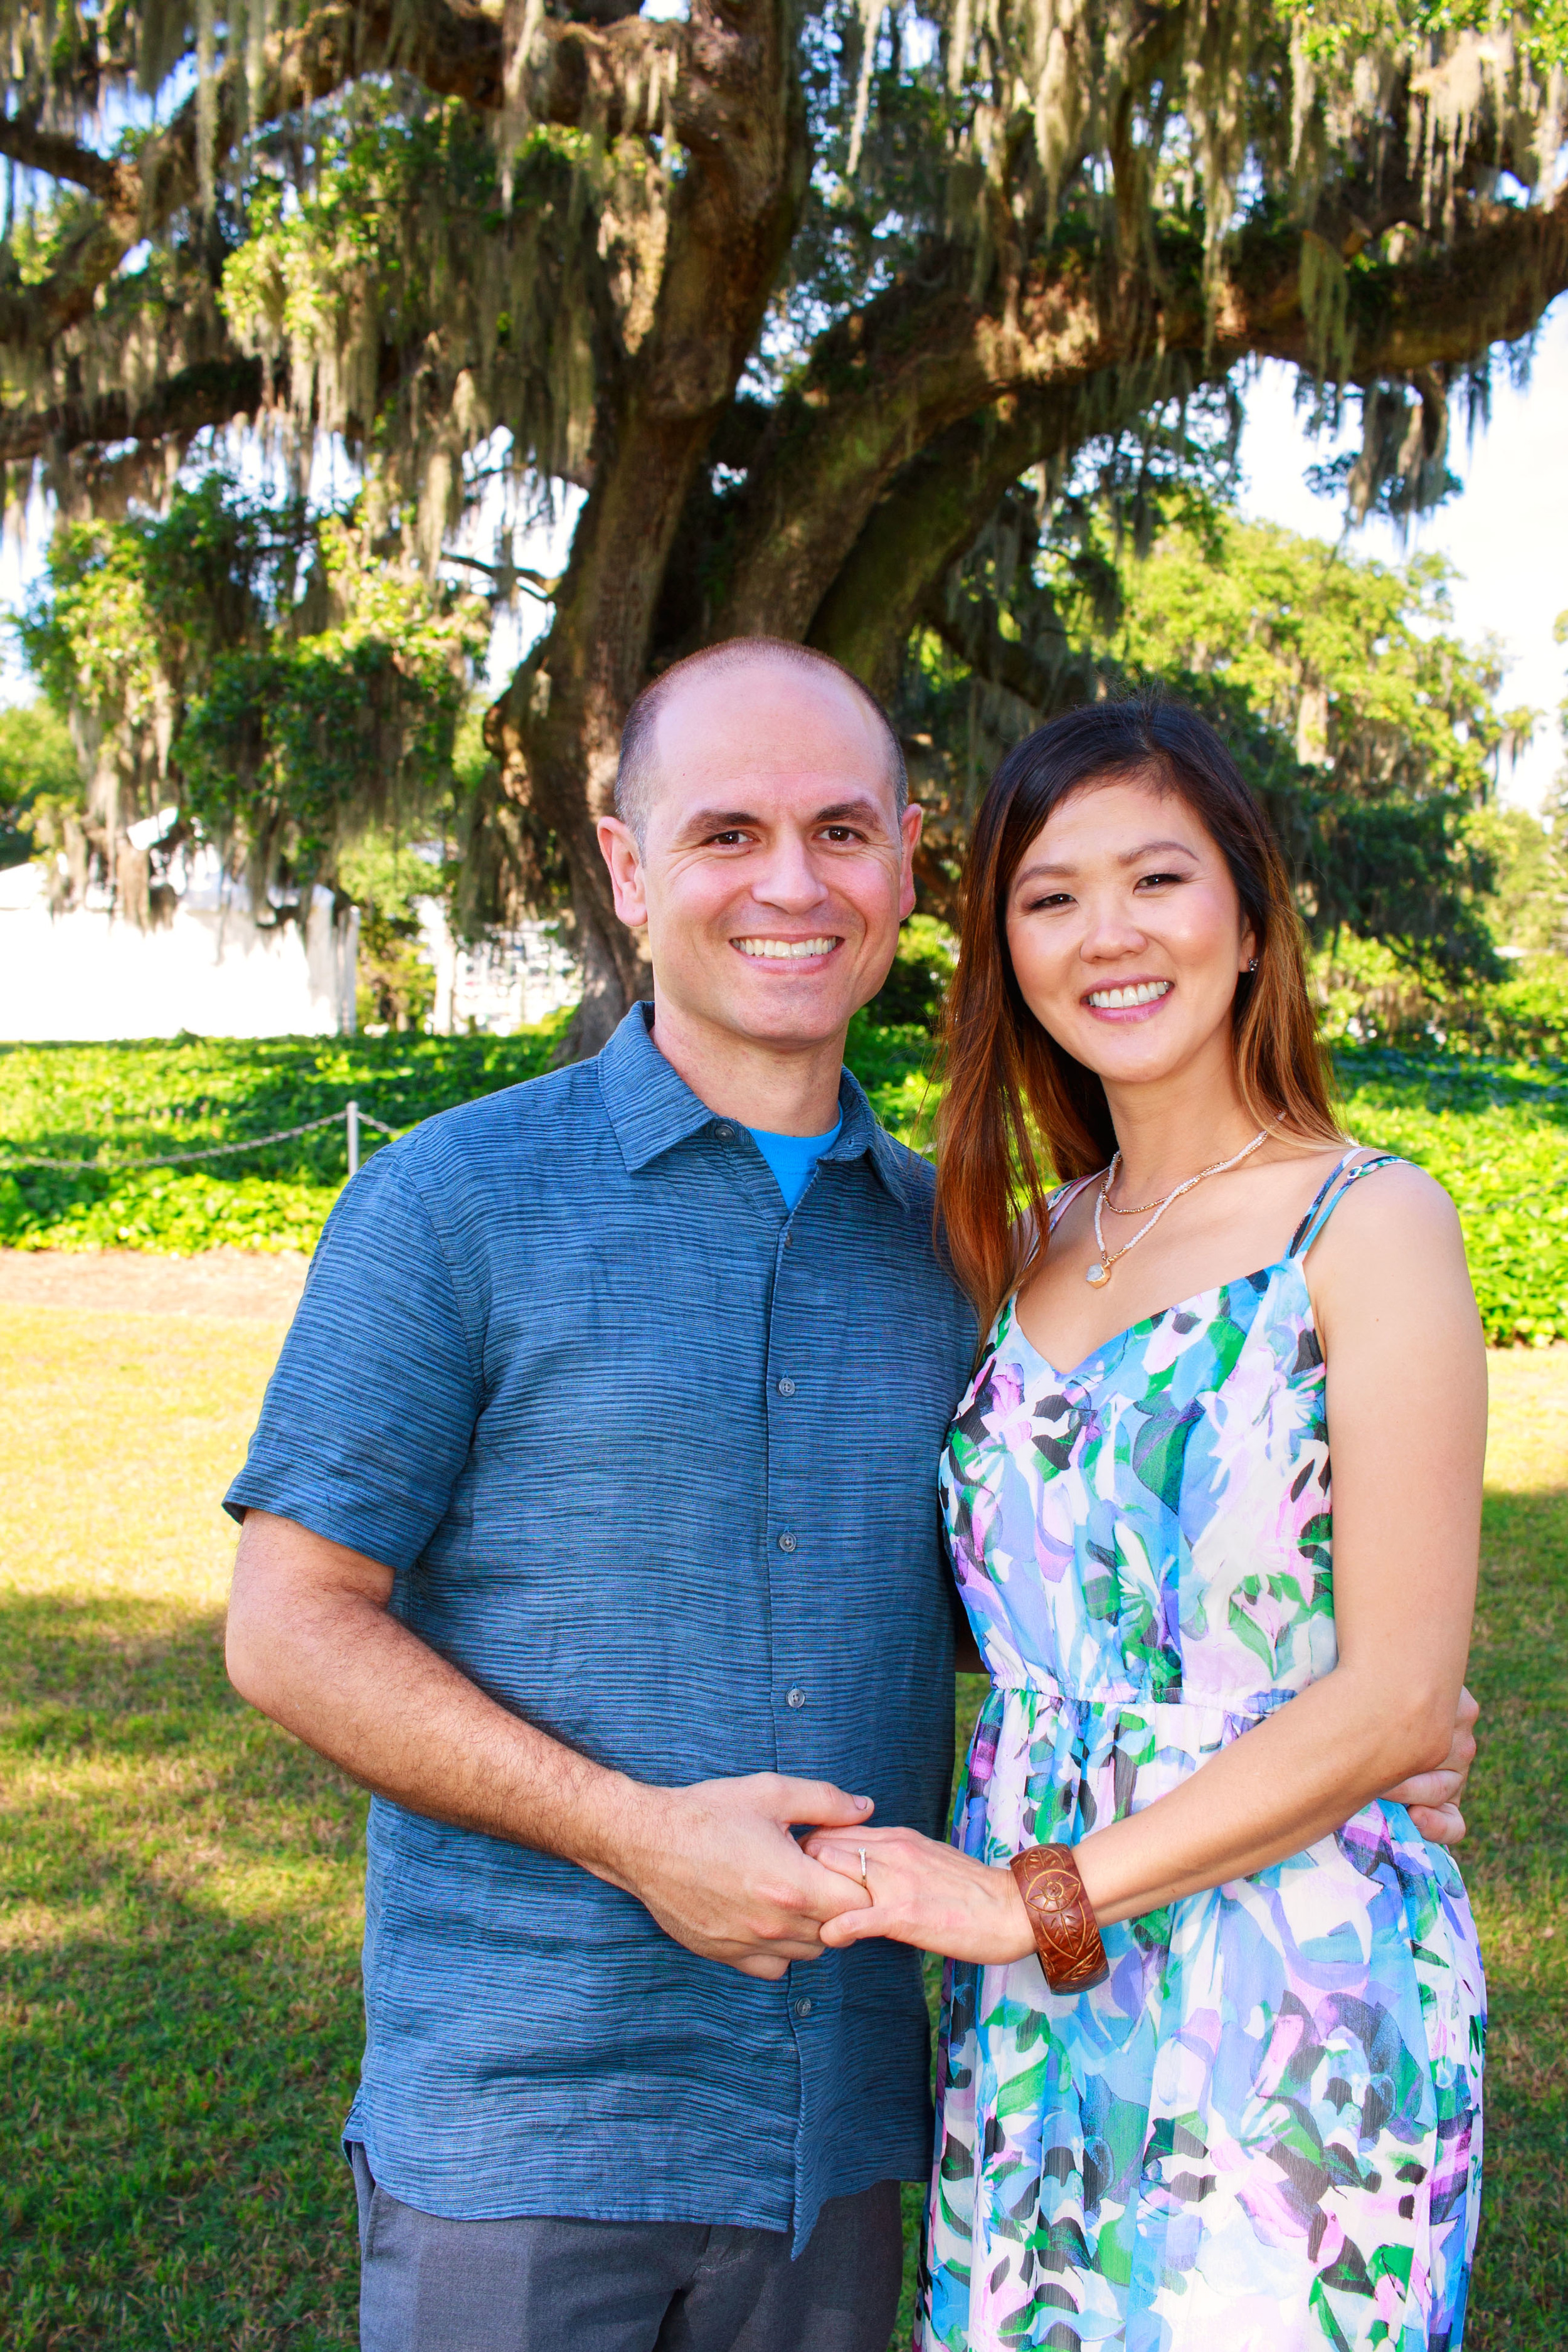 Airlie_Gardens_Engagement_Photography_Brian_&_Amy_49.jpg